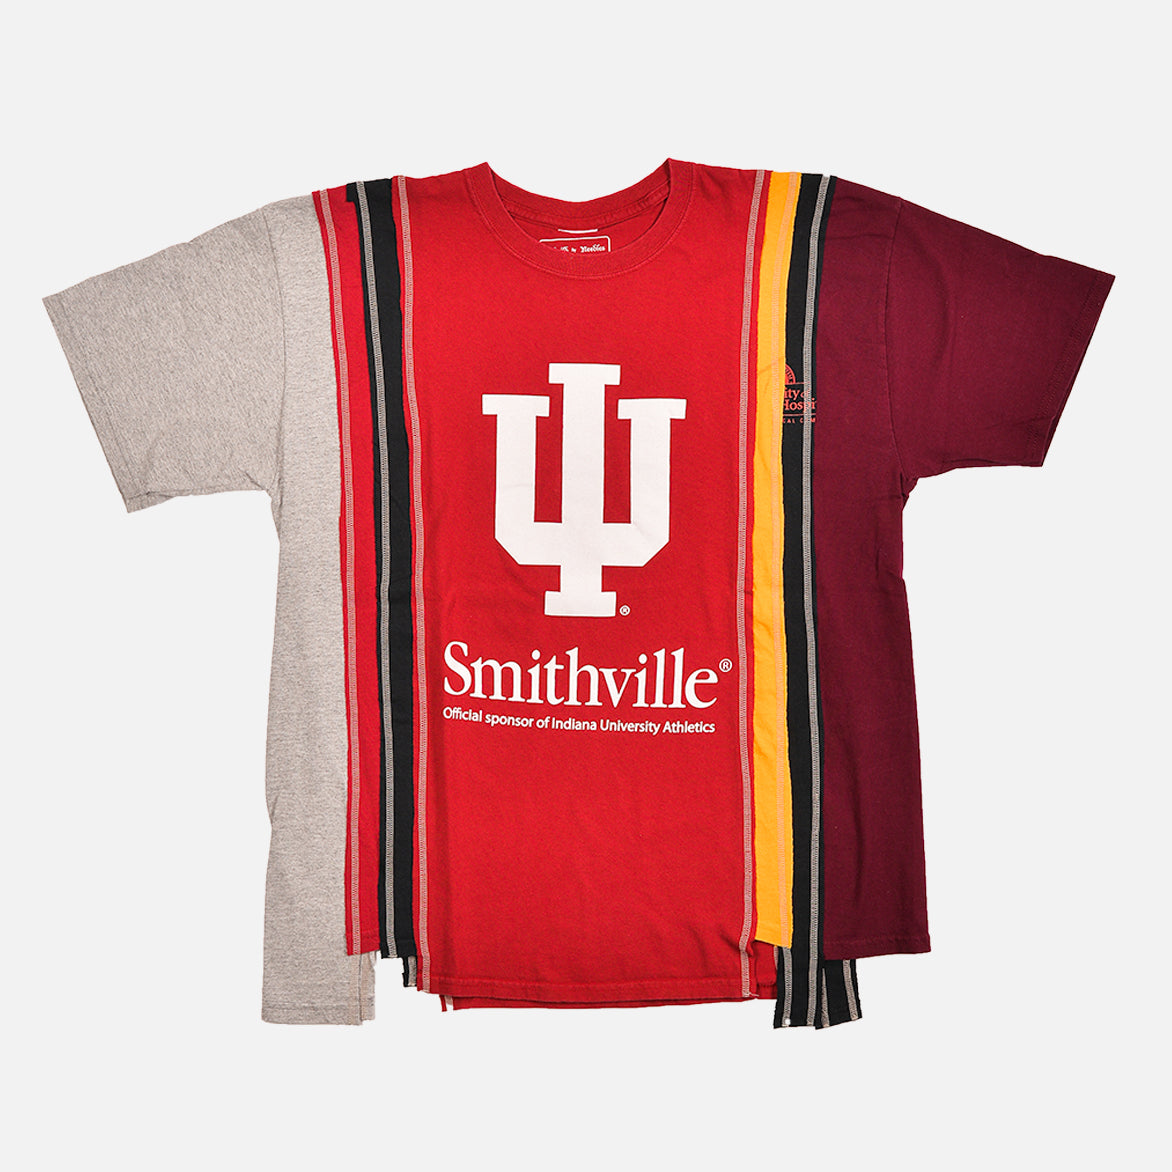 7 CUTS COLLEGE S/S TEE (XL) - MULTI / SMITHVILLE